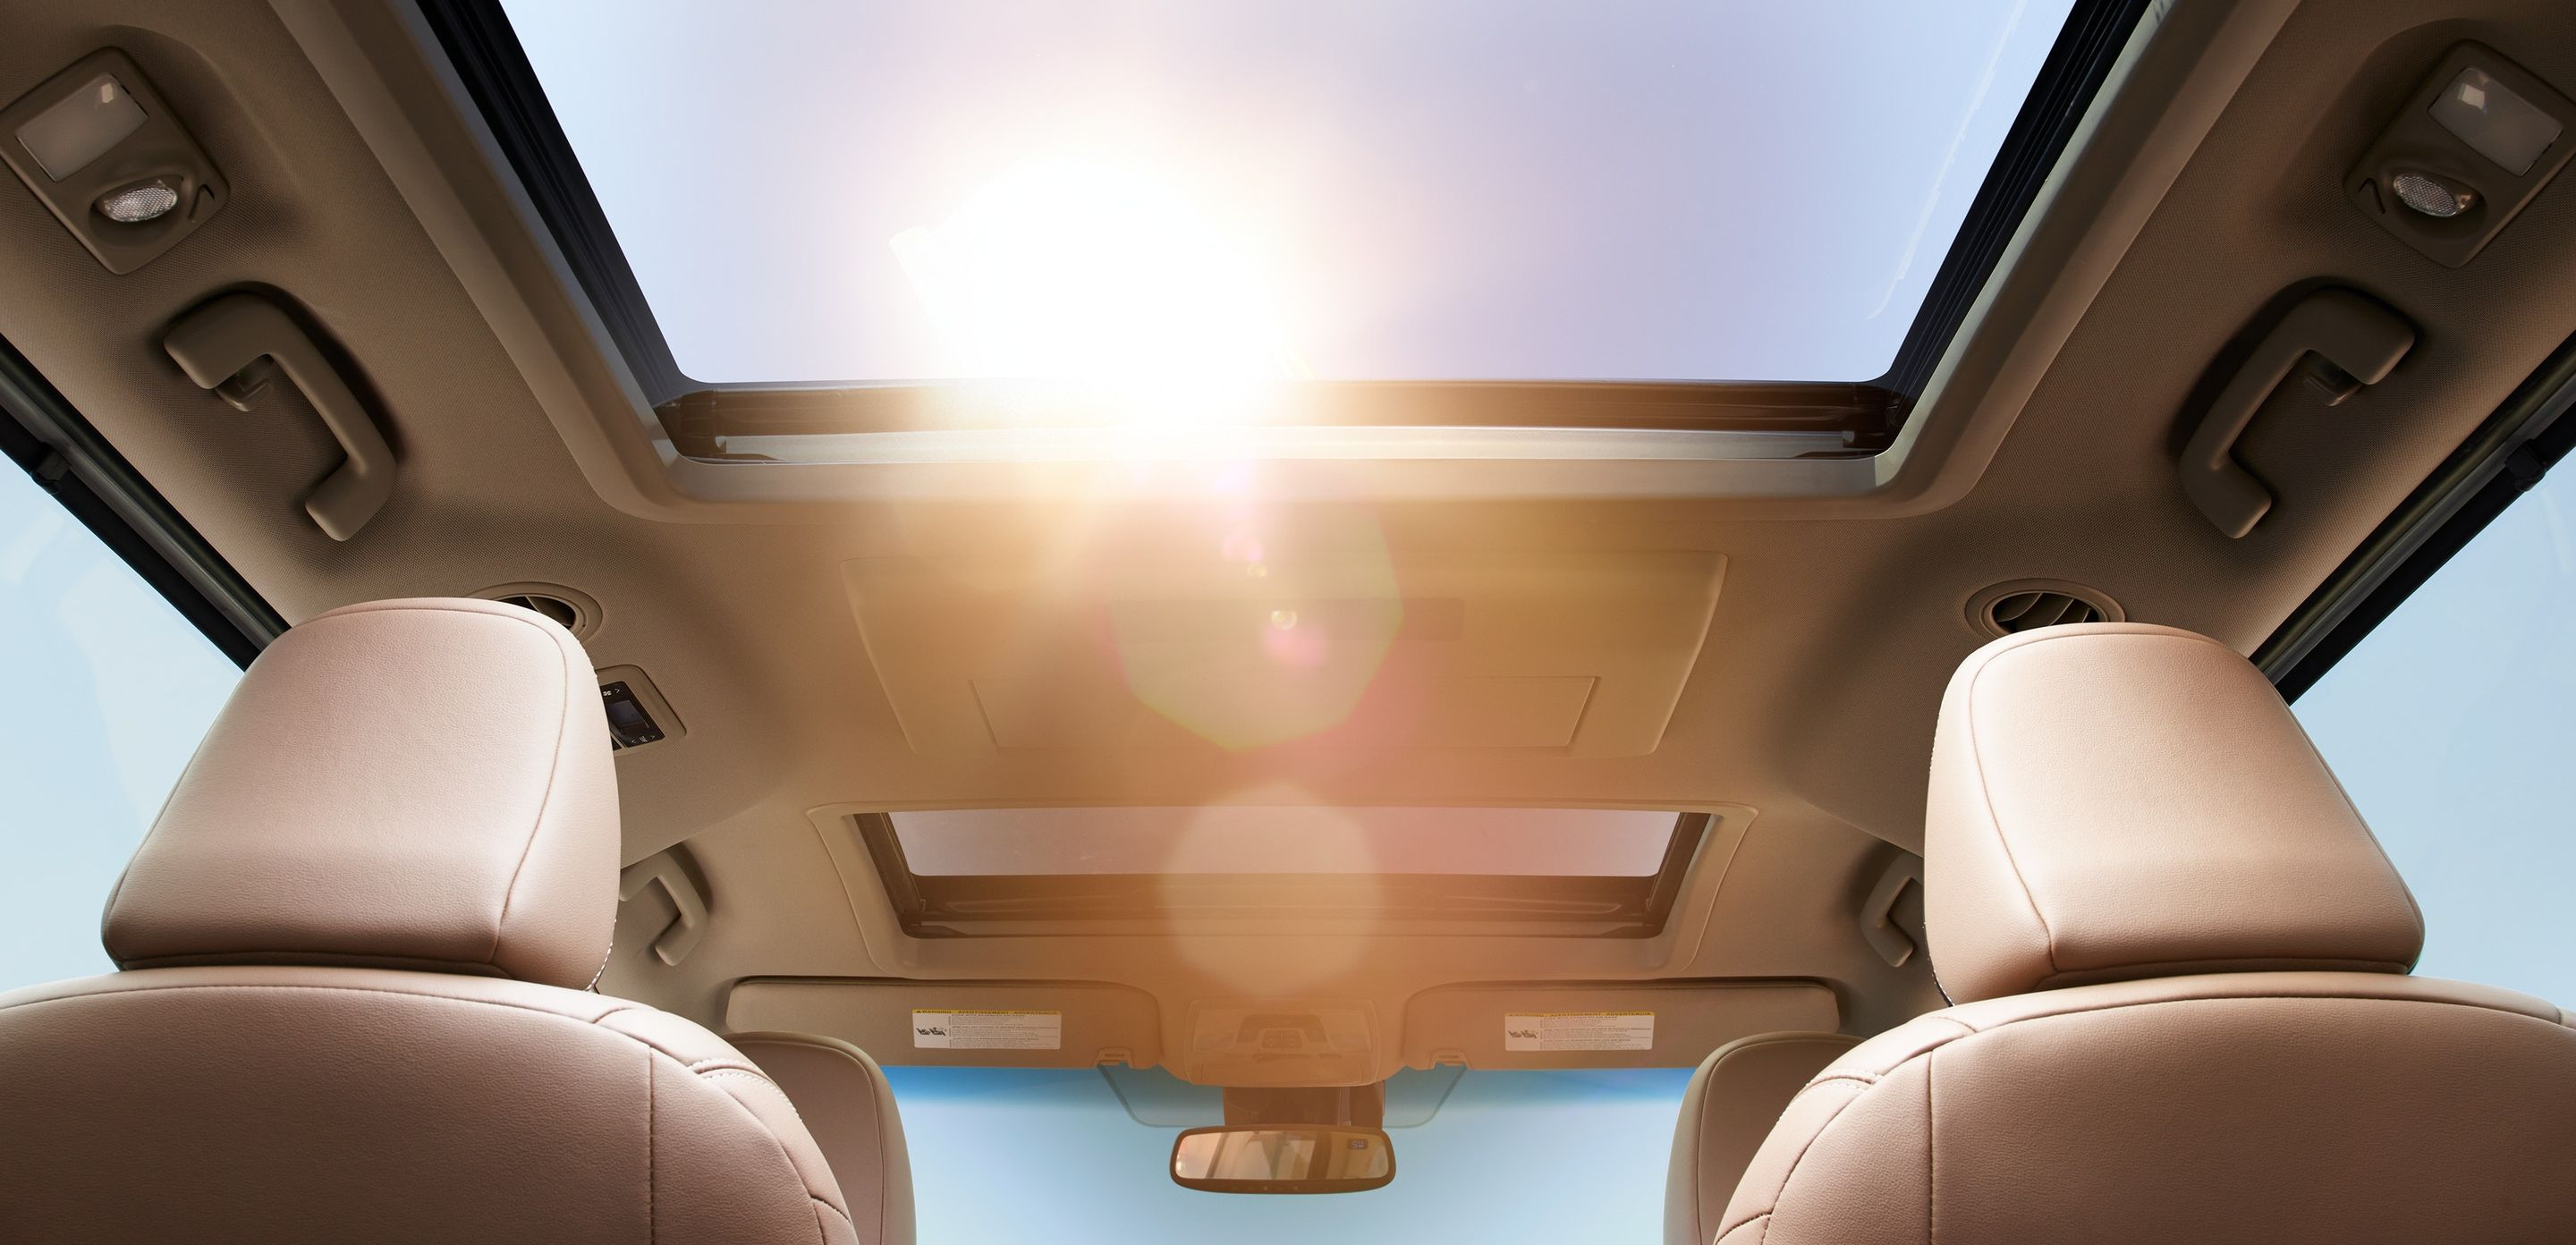 The Sienna's Huge Sunroof!